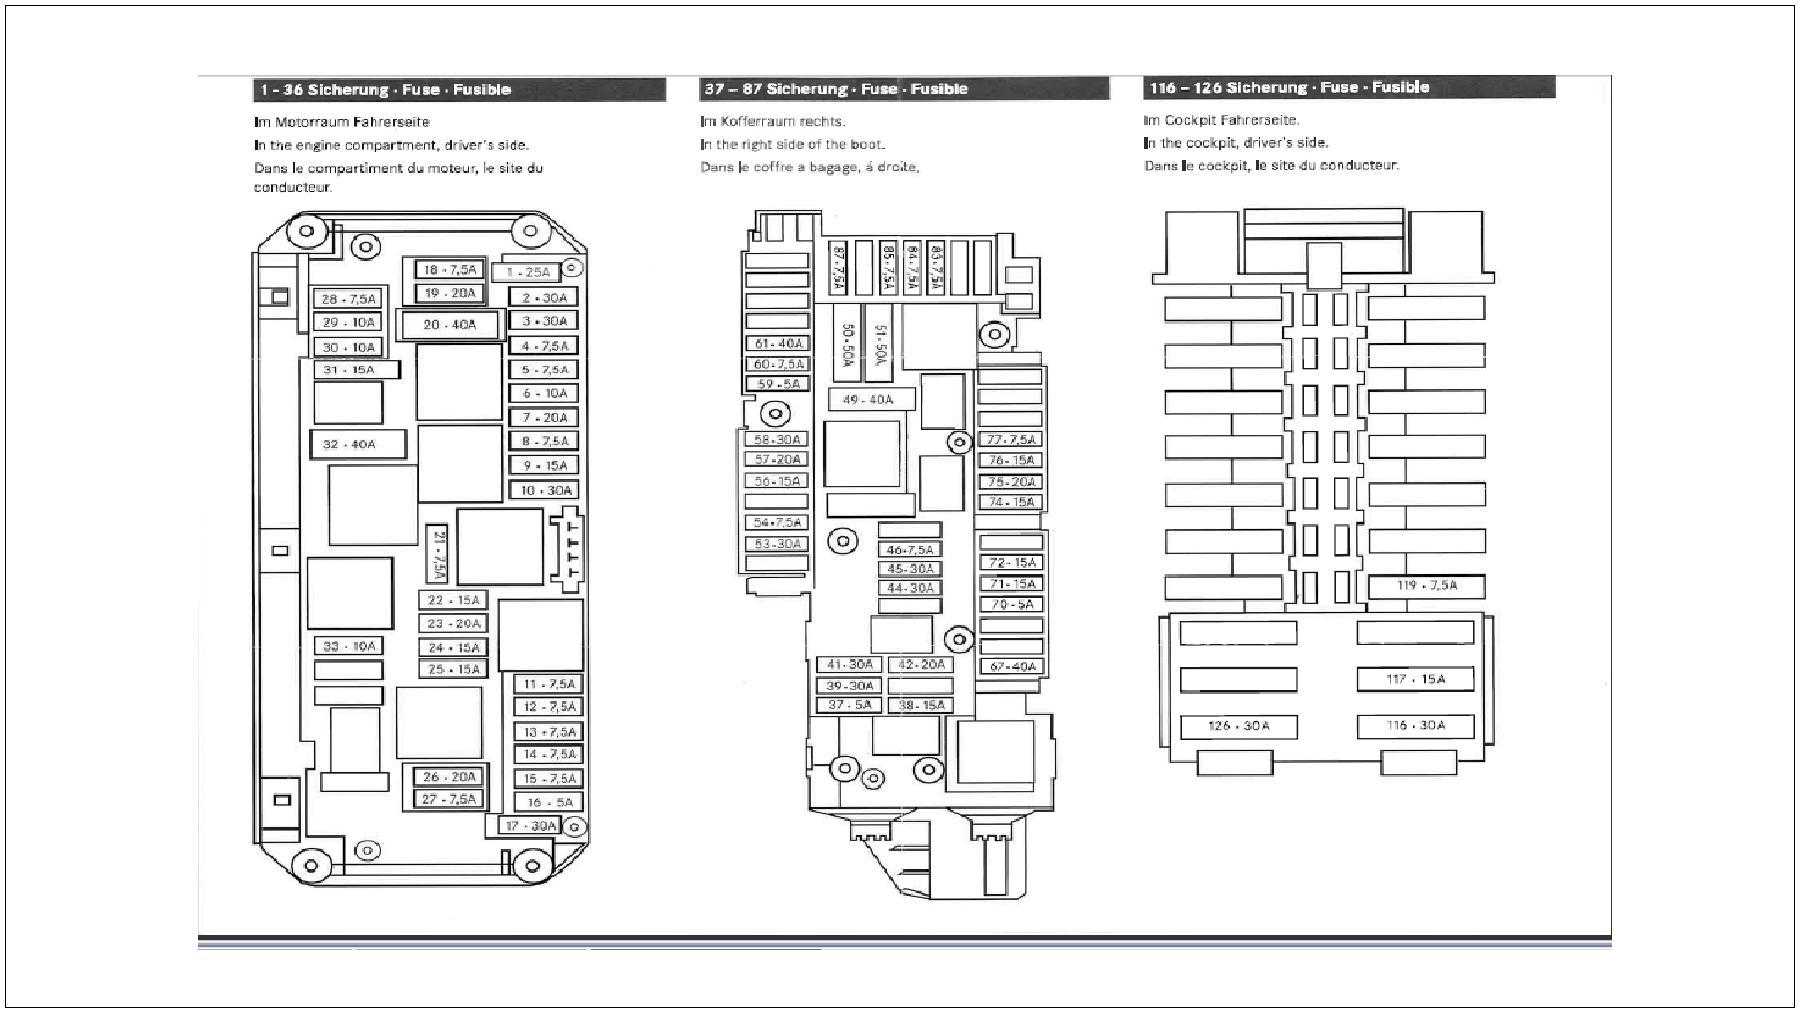 hight resolution of c300 fuse diagram wiring diagram paper 2013 mercedes c300 fuse box diagram 2013 c300 fuse diagram